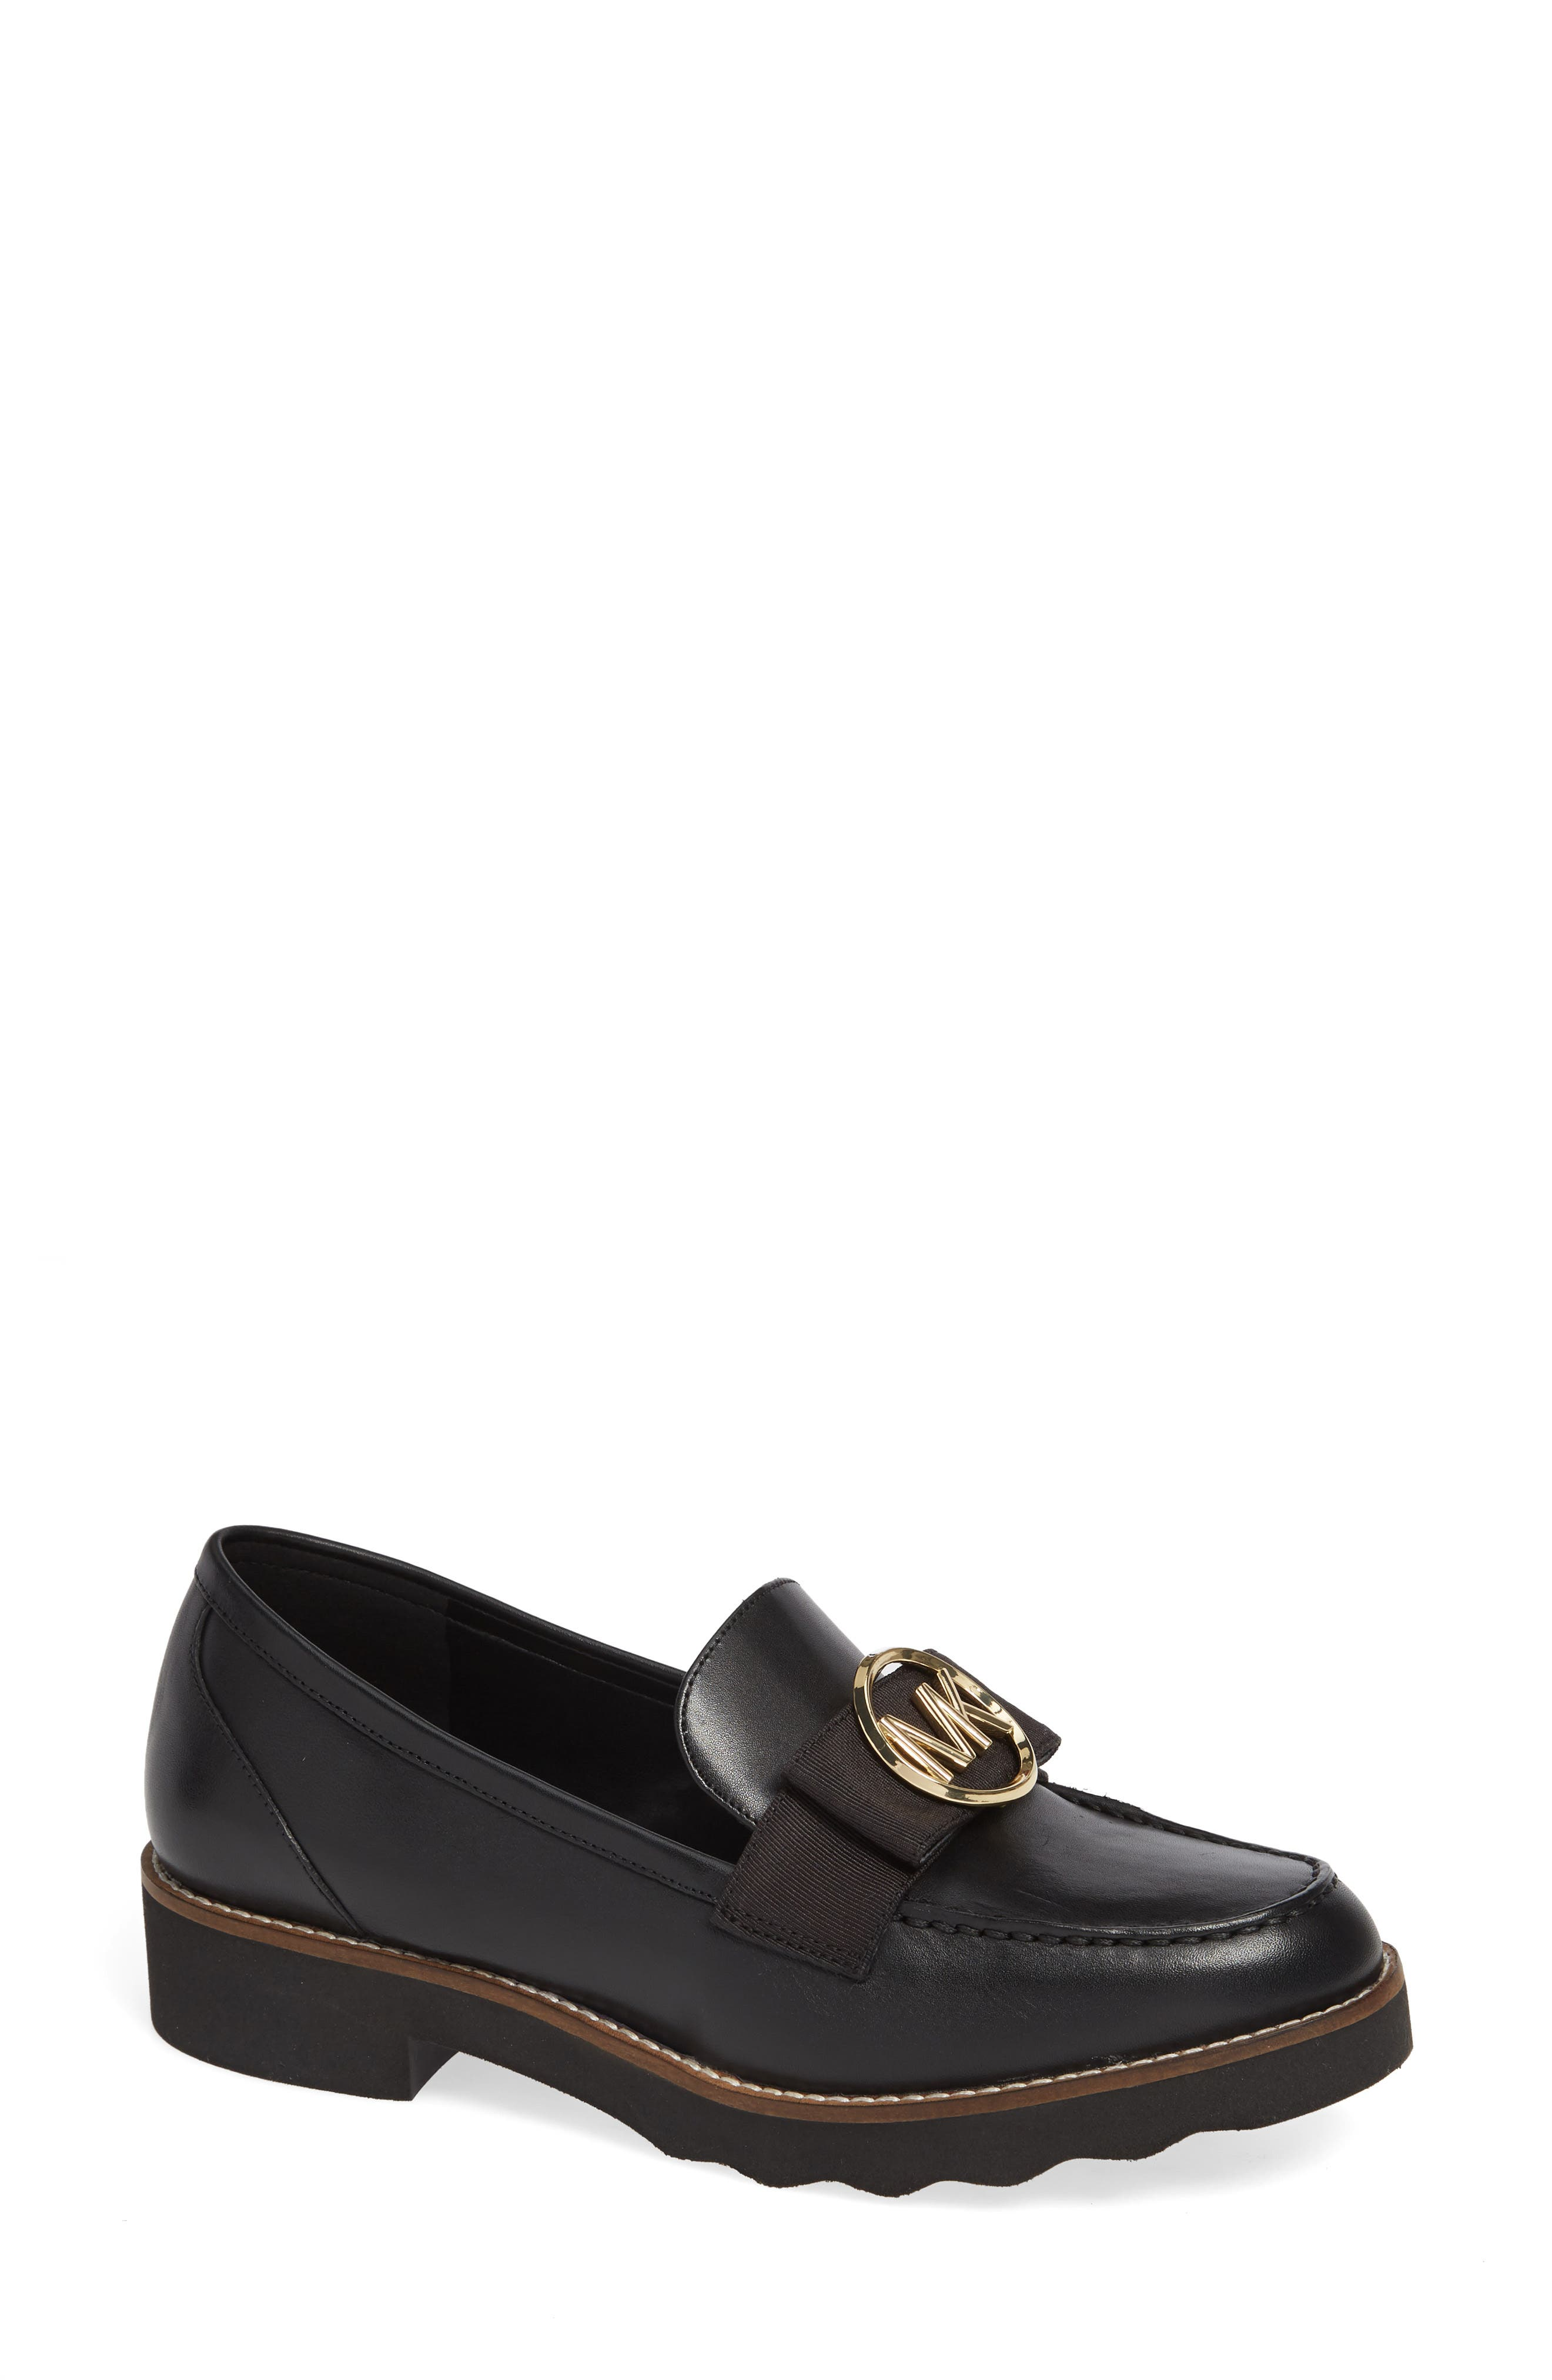 Aden Loafer,                             Main thumbnail 1, color,                             BLACK VACHETTA LEATHER